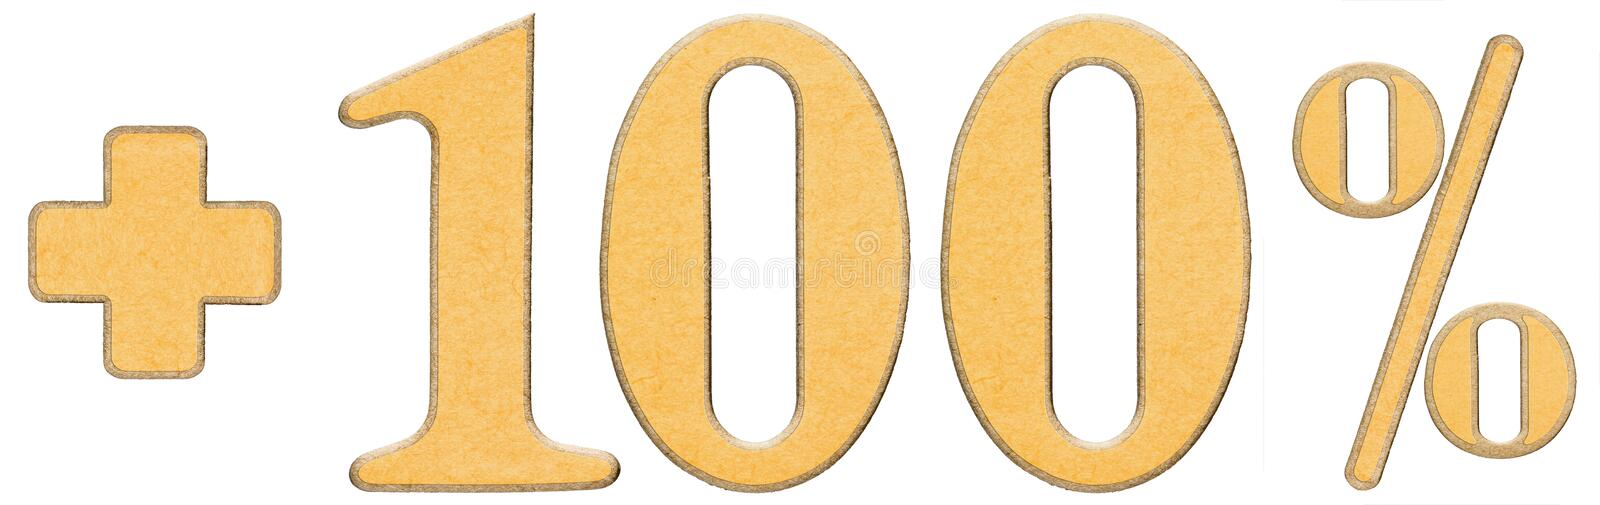 Download Percent Benefits, Plus 100 One Hundred Percent, Numerals Isolate Stock Image - Image: 83712867